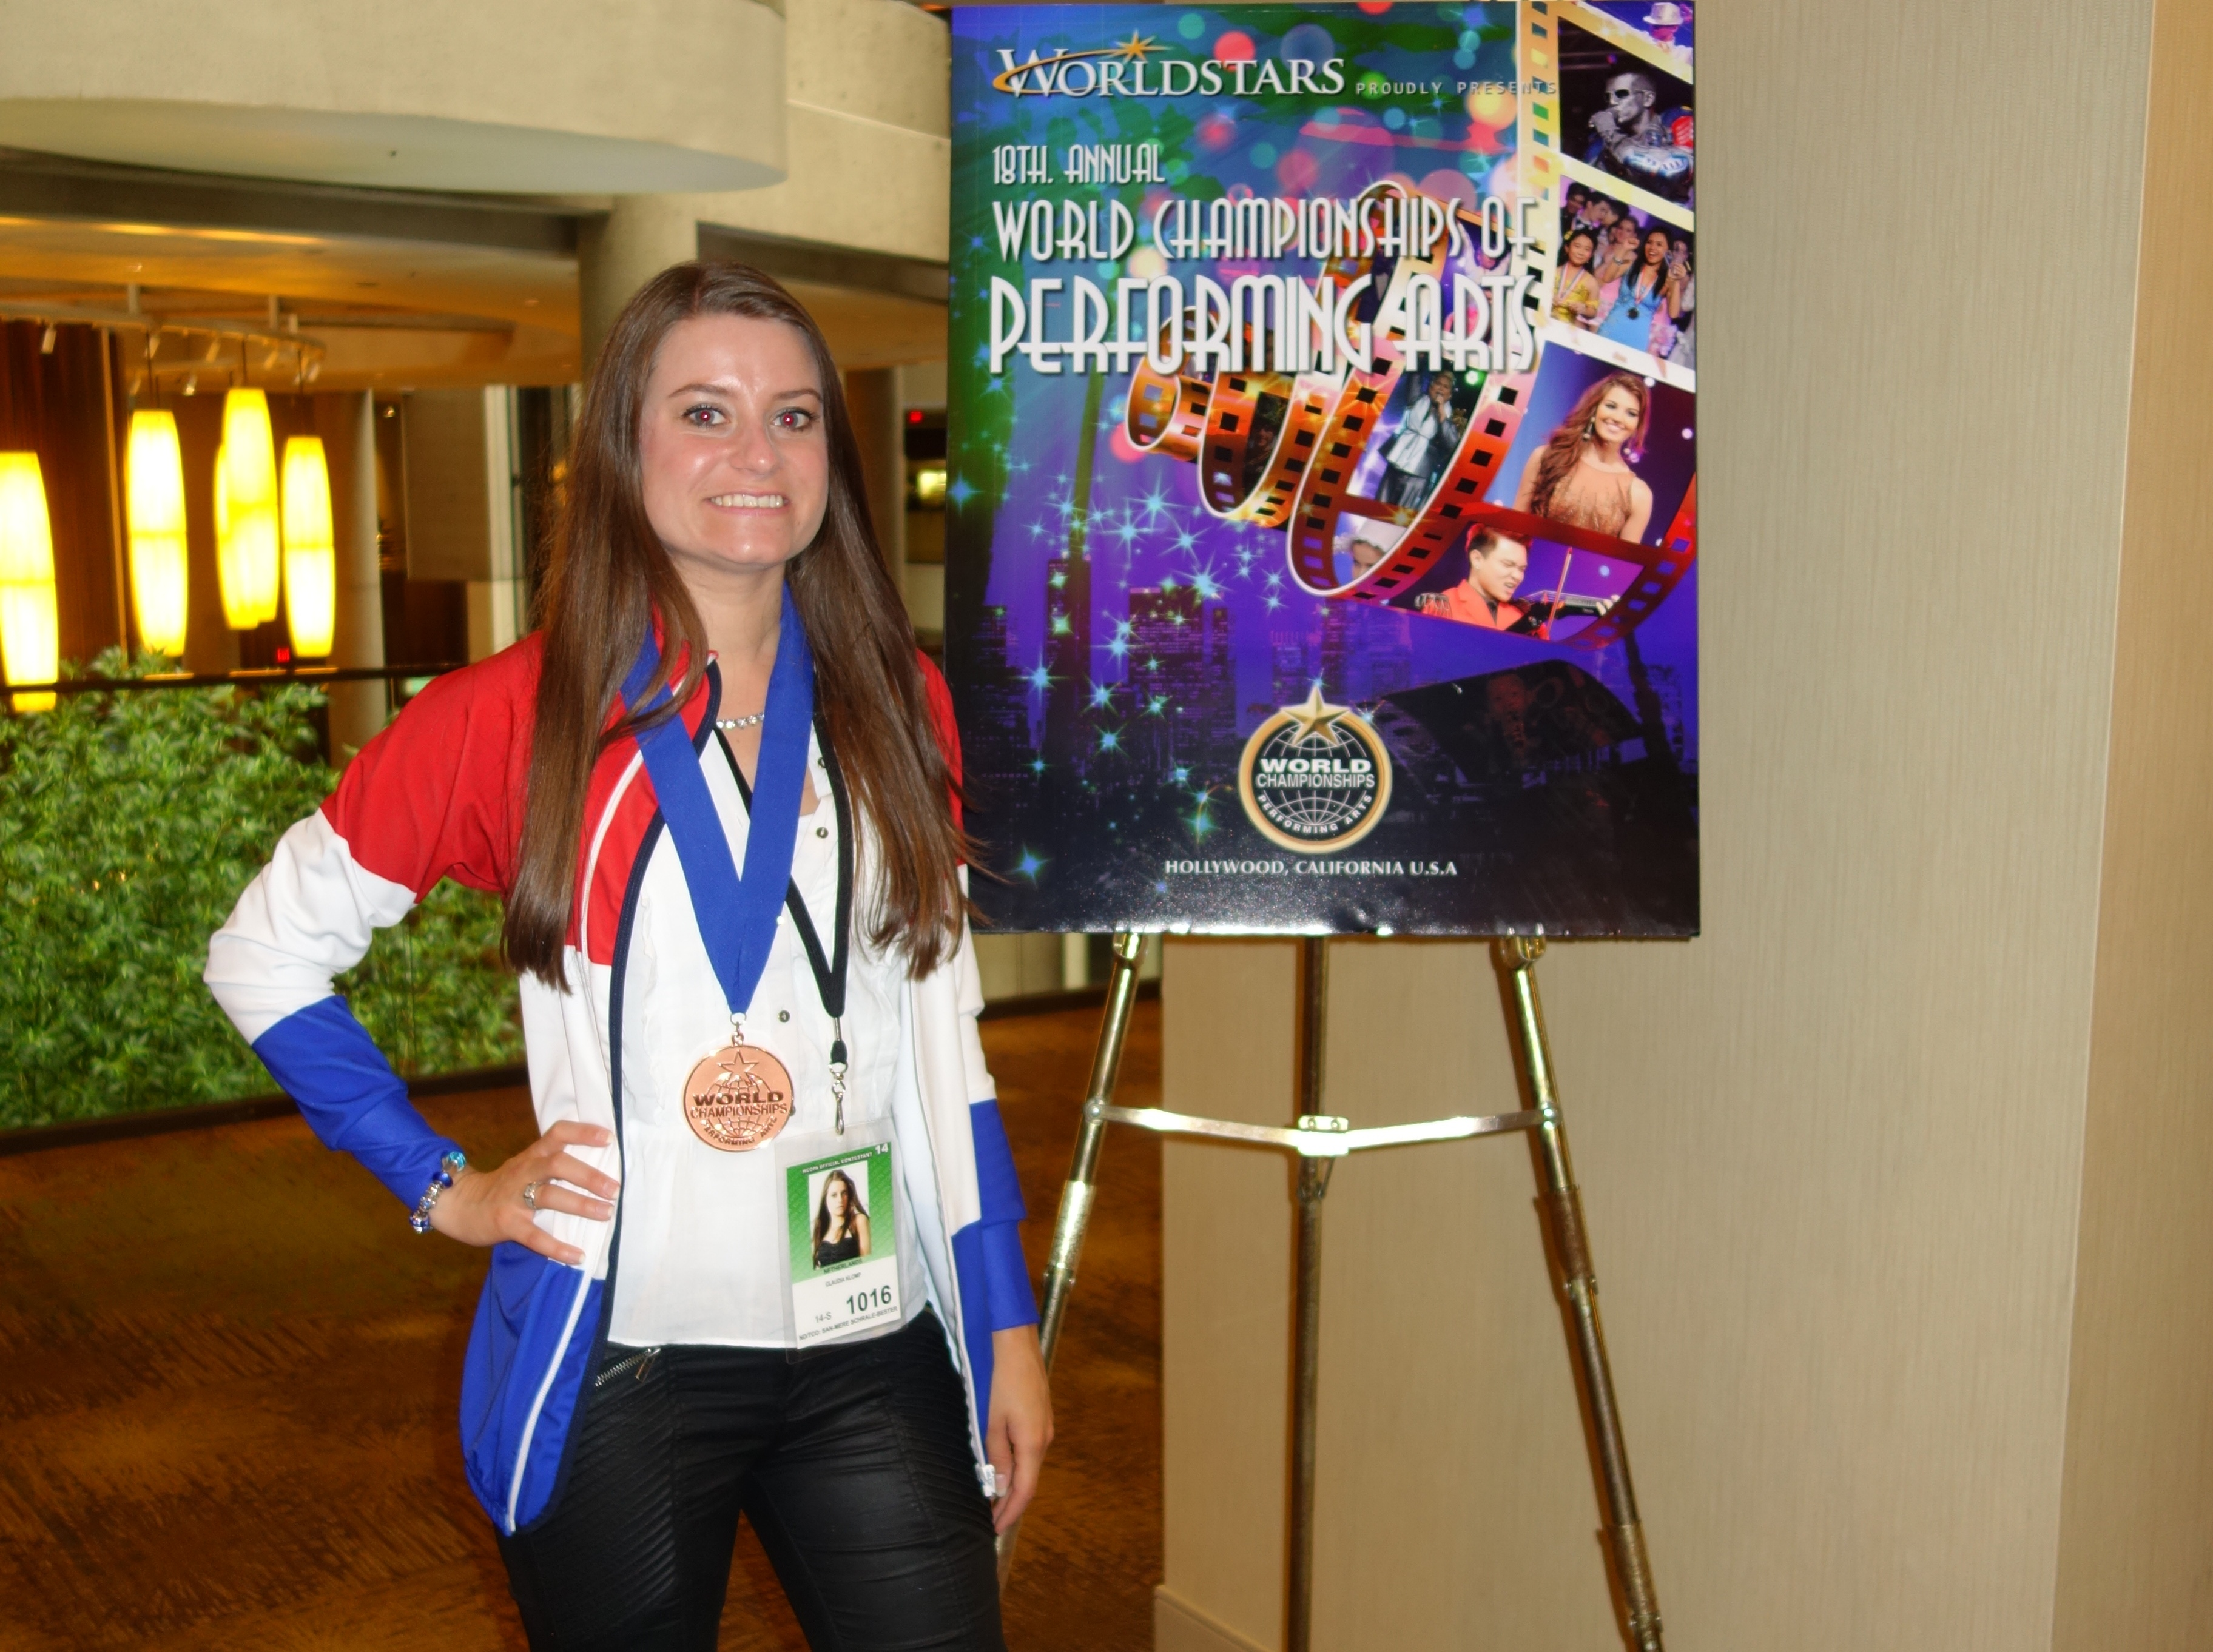 Bronze medal winner of acting classical at the World Championships of Performing Arts in Hollywood